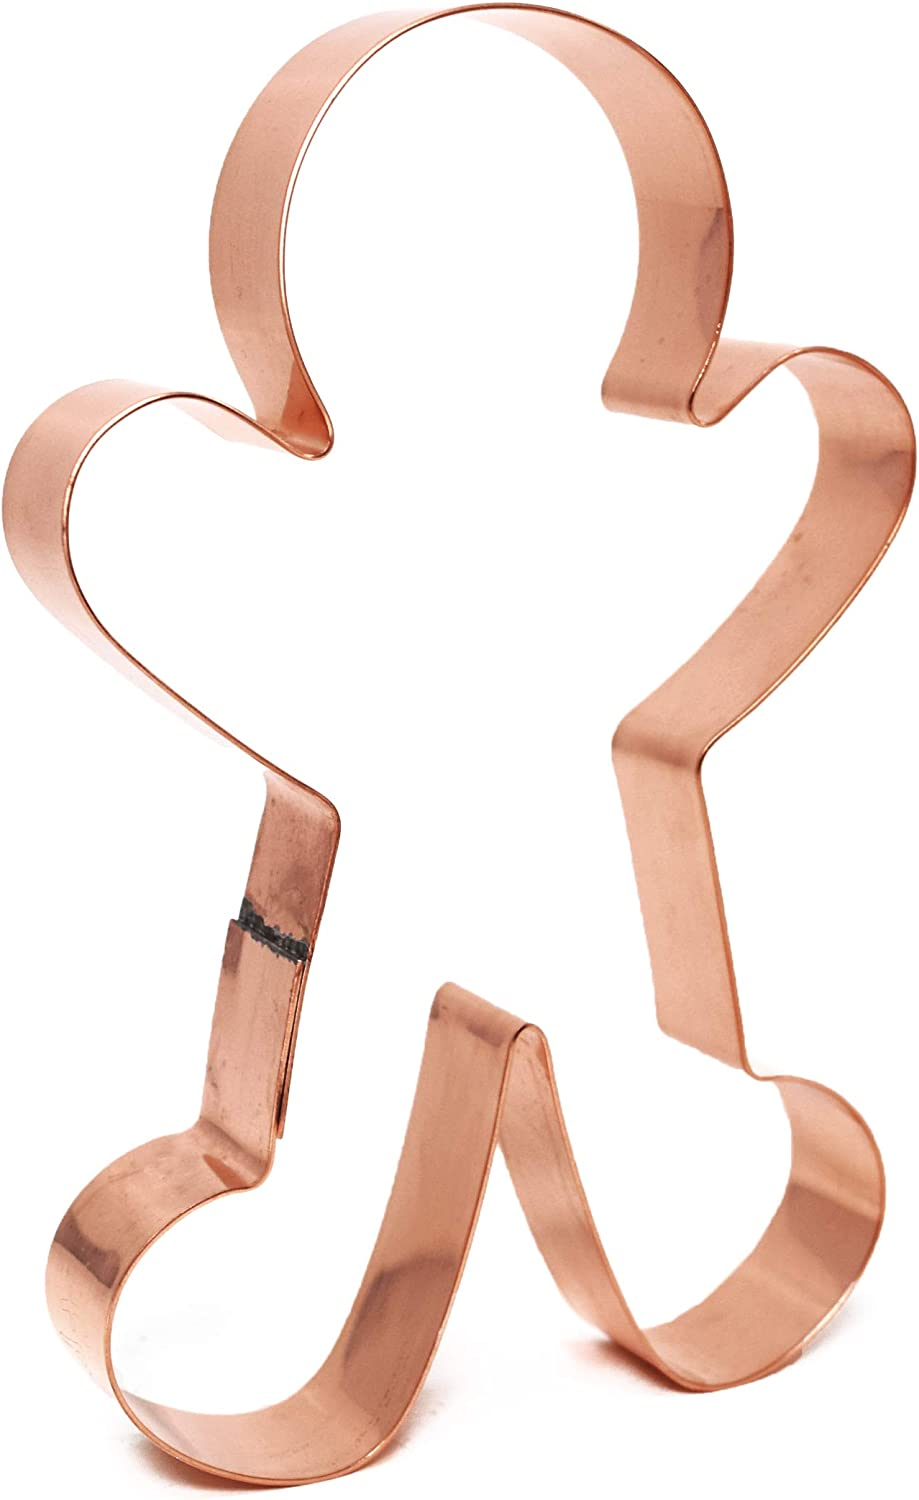 Simple Traditional Gingerbread Man Cookie Cutter